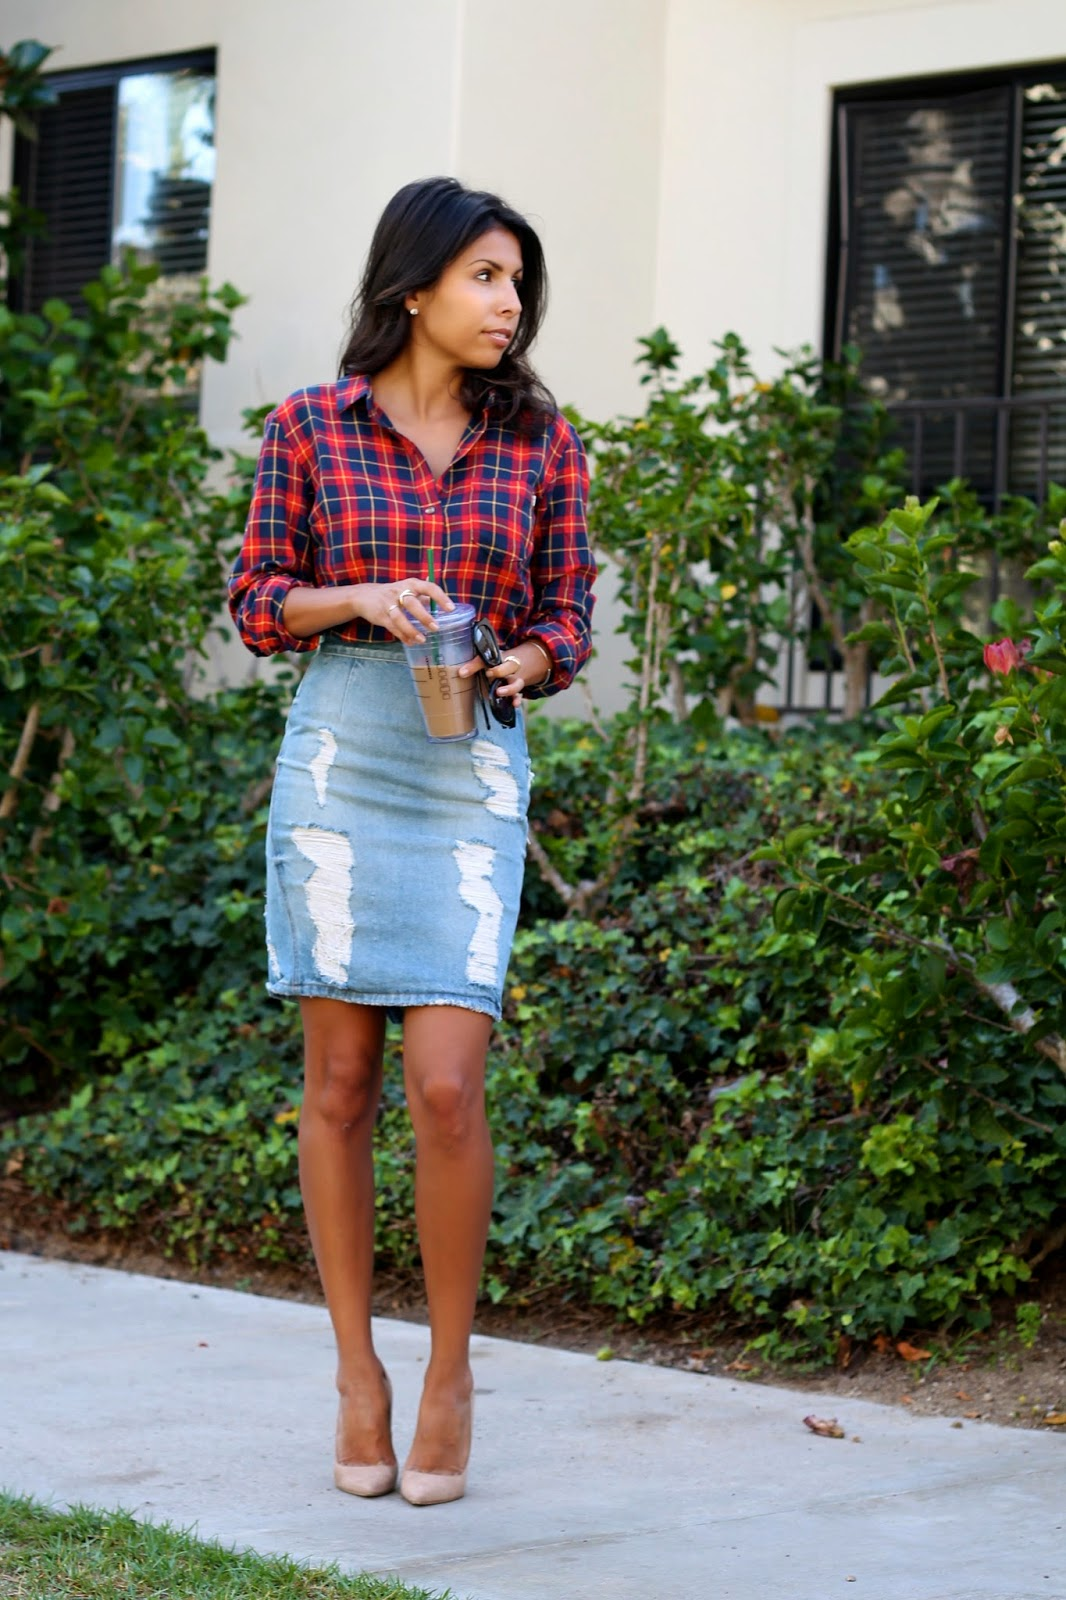 how to style flannel shirt, jimmy choo shoes, denim skirt, fall style, what is fashion